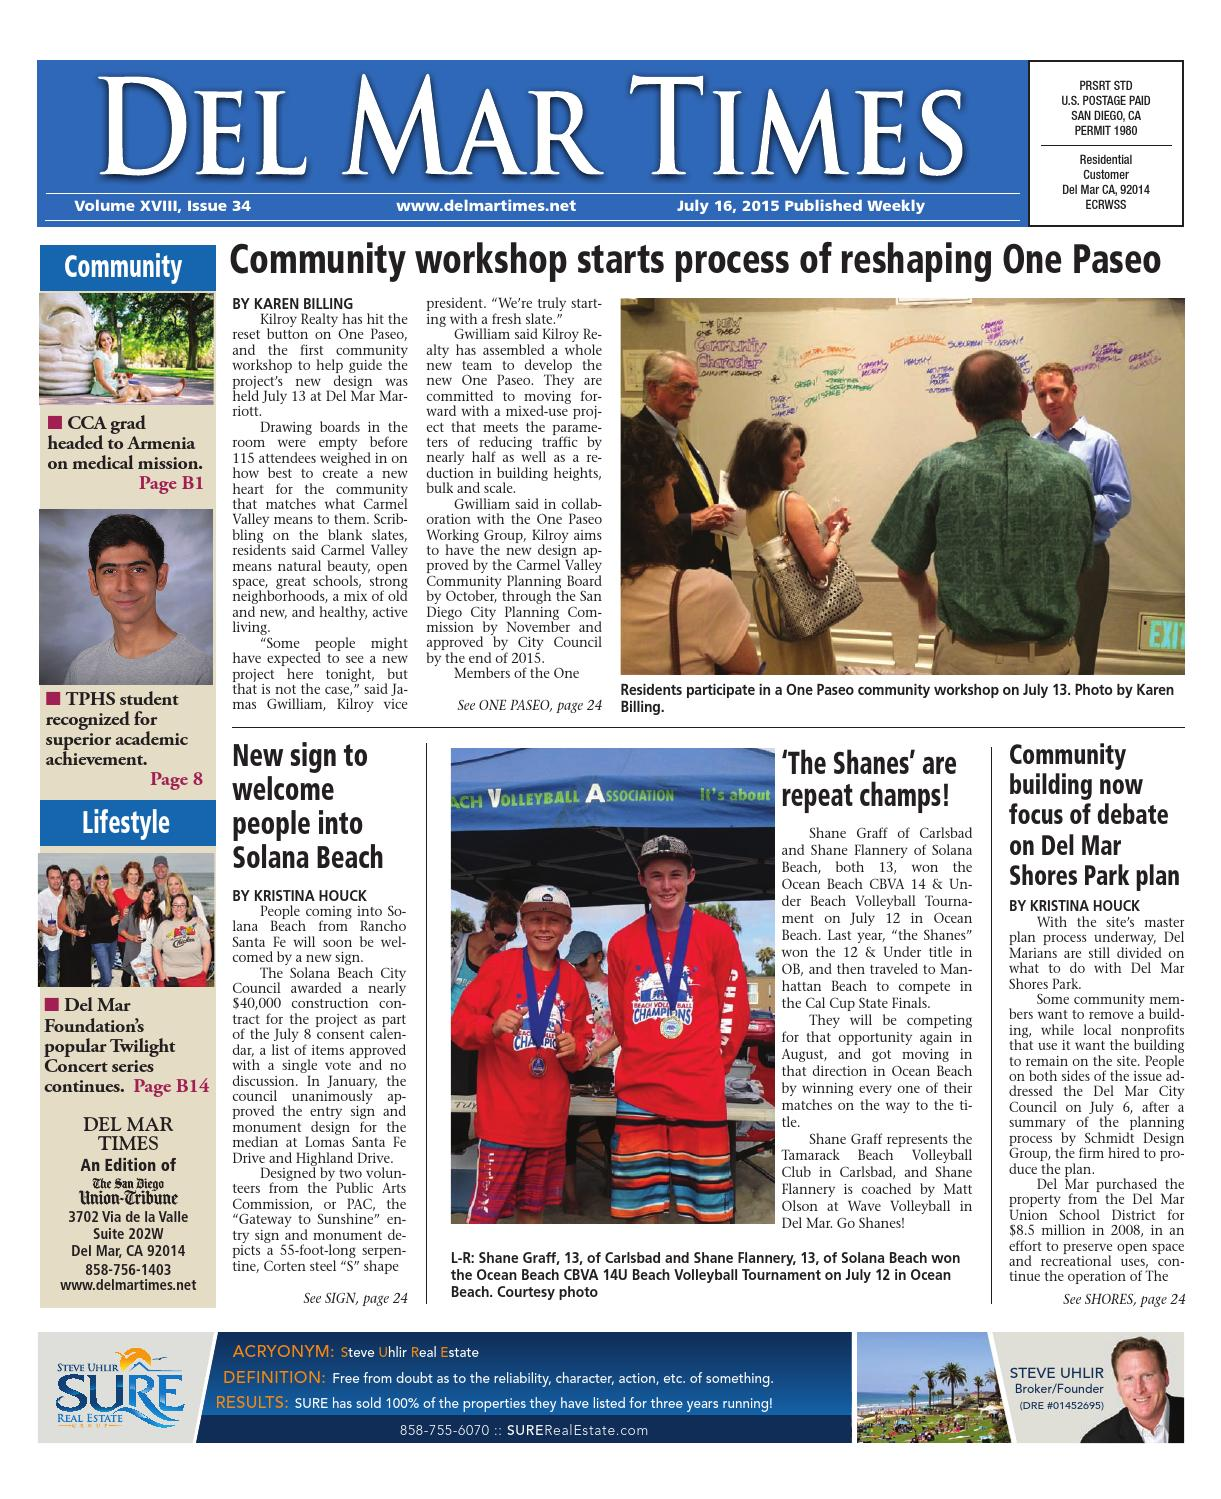 Del mar times 7 16 15 by MainStreet Media - issuu b5c40bc475563